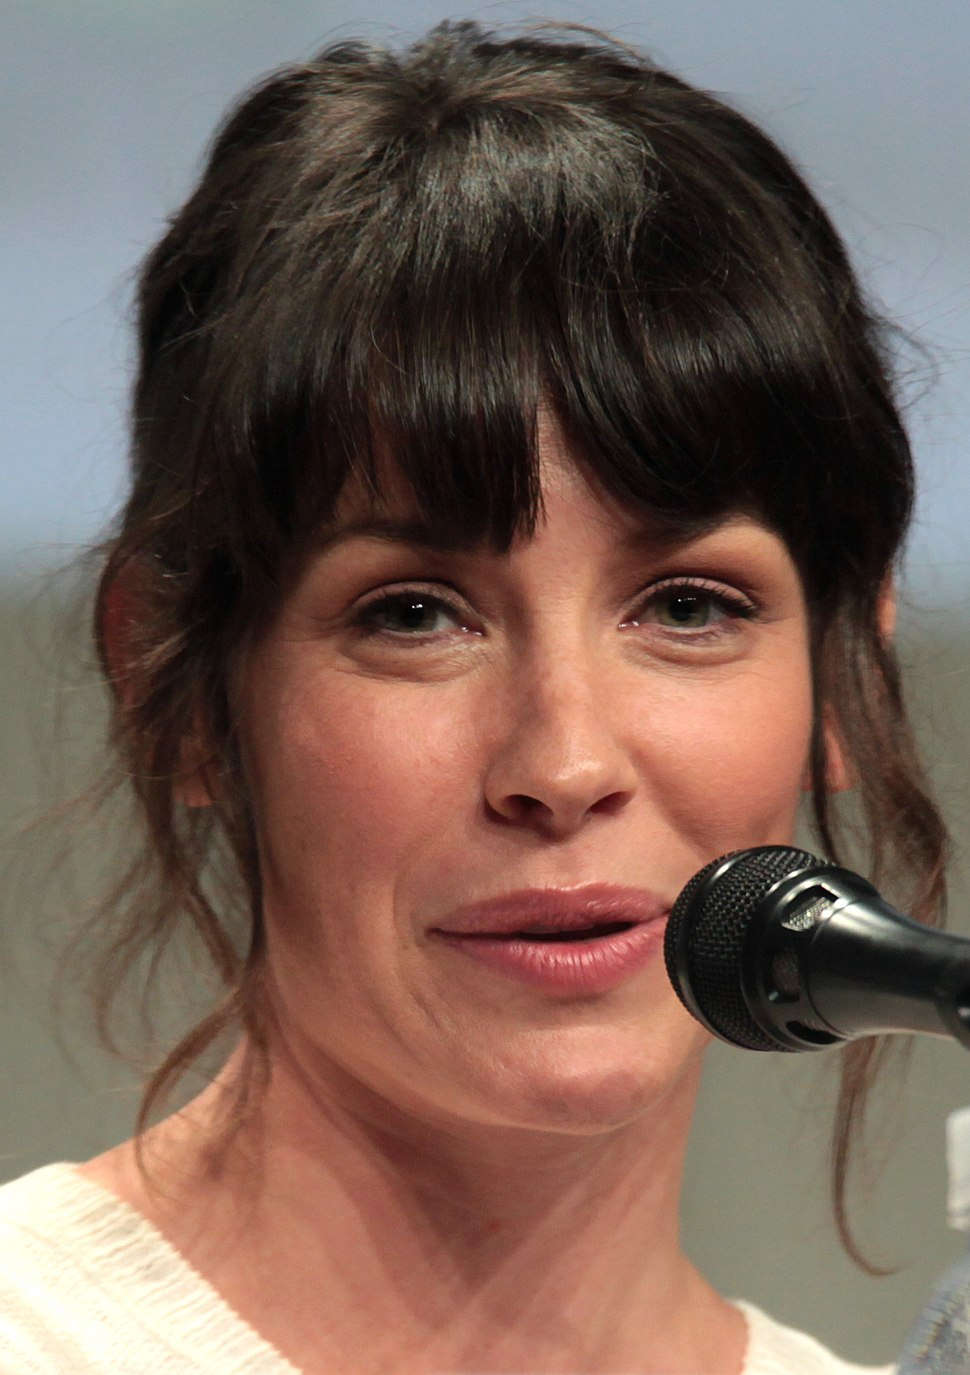 Evangeline Lilly SDCC 2014 (cropped)